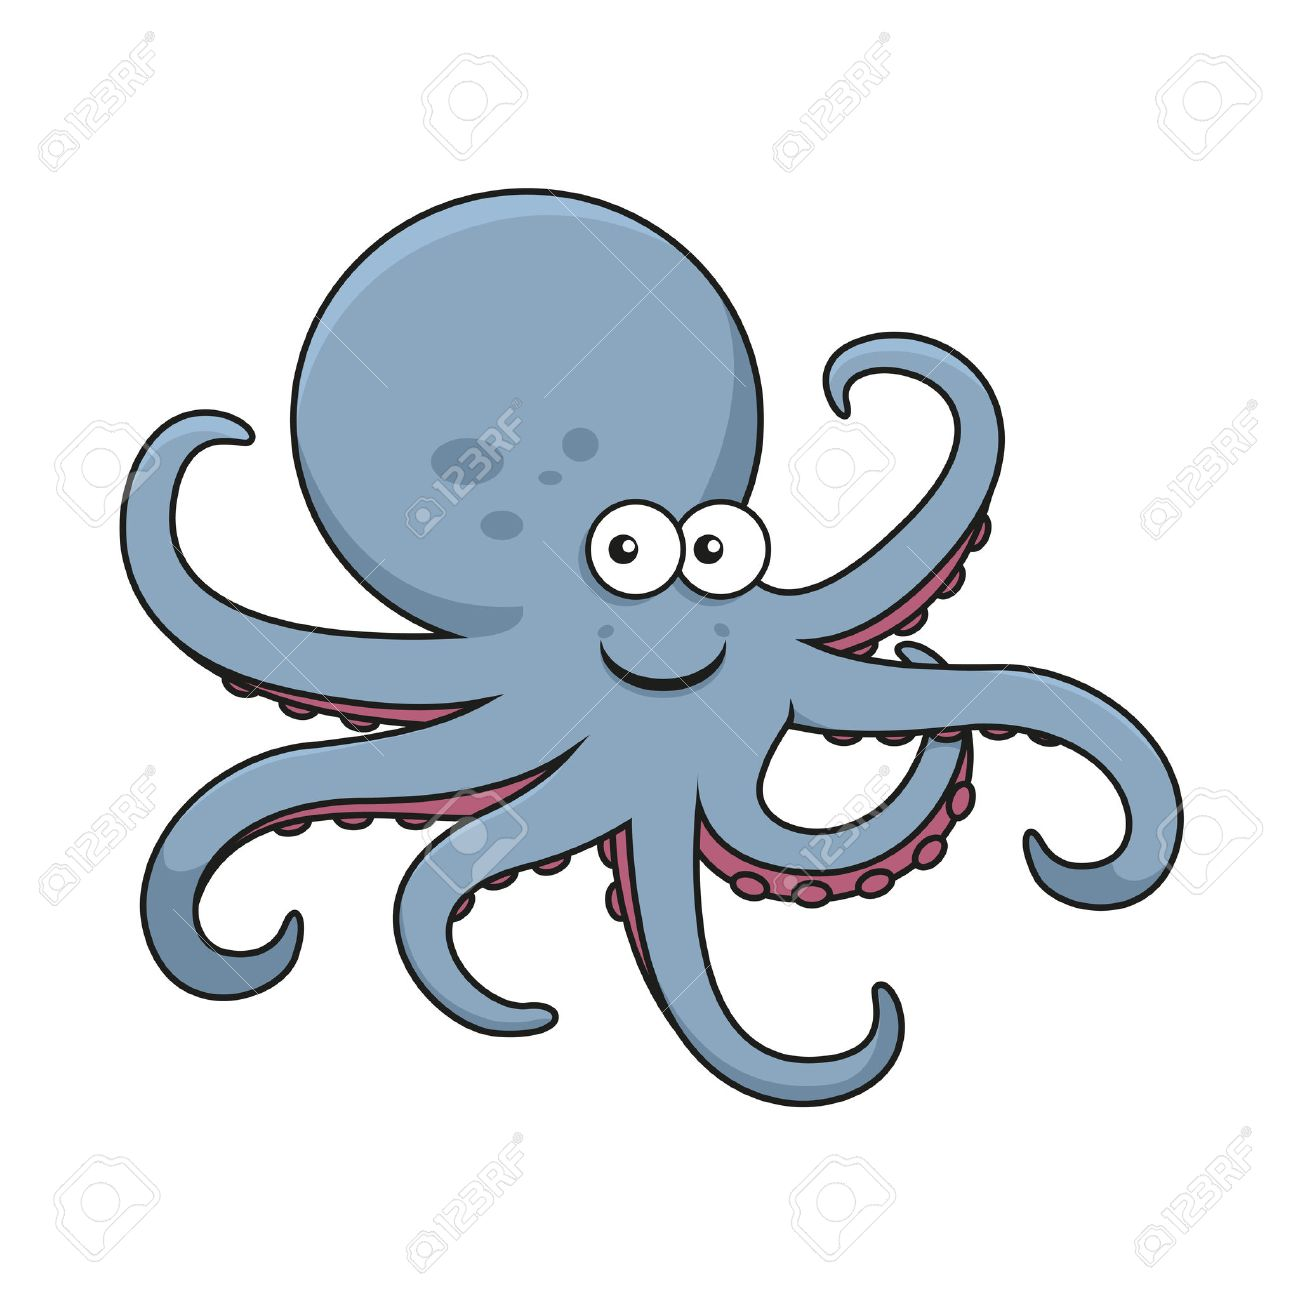 blue octopus cartoon character with big round head and curved rh 123rf com cartoon octopus character images purple octopus cartoon character